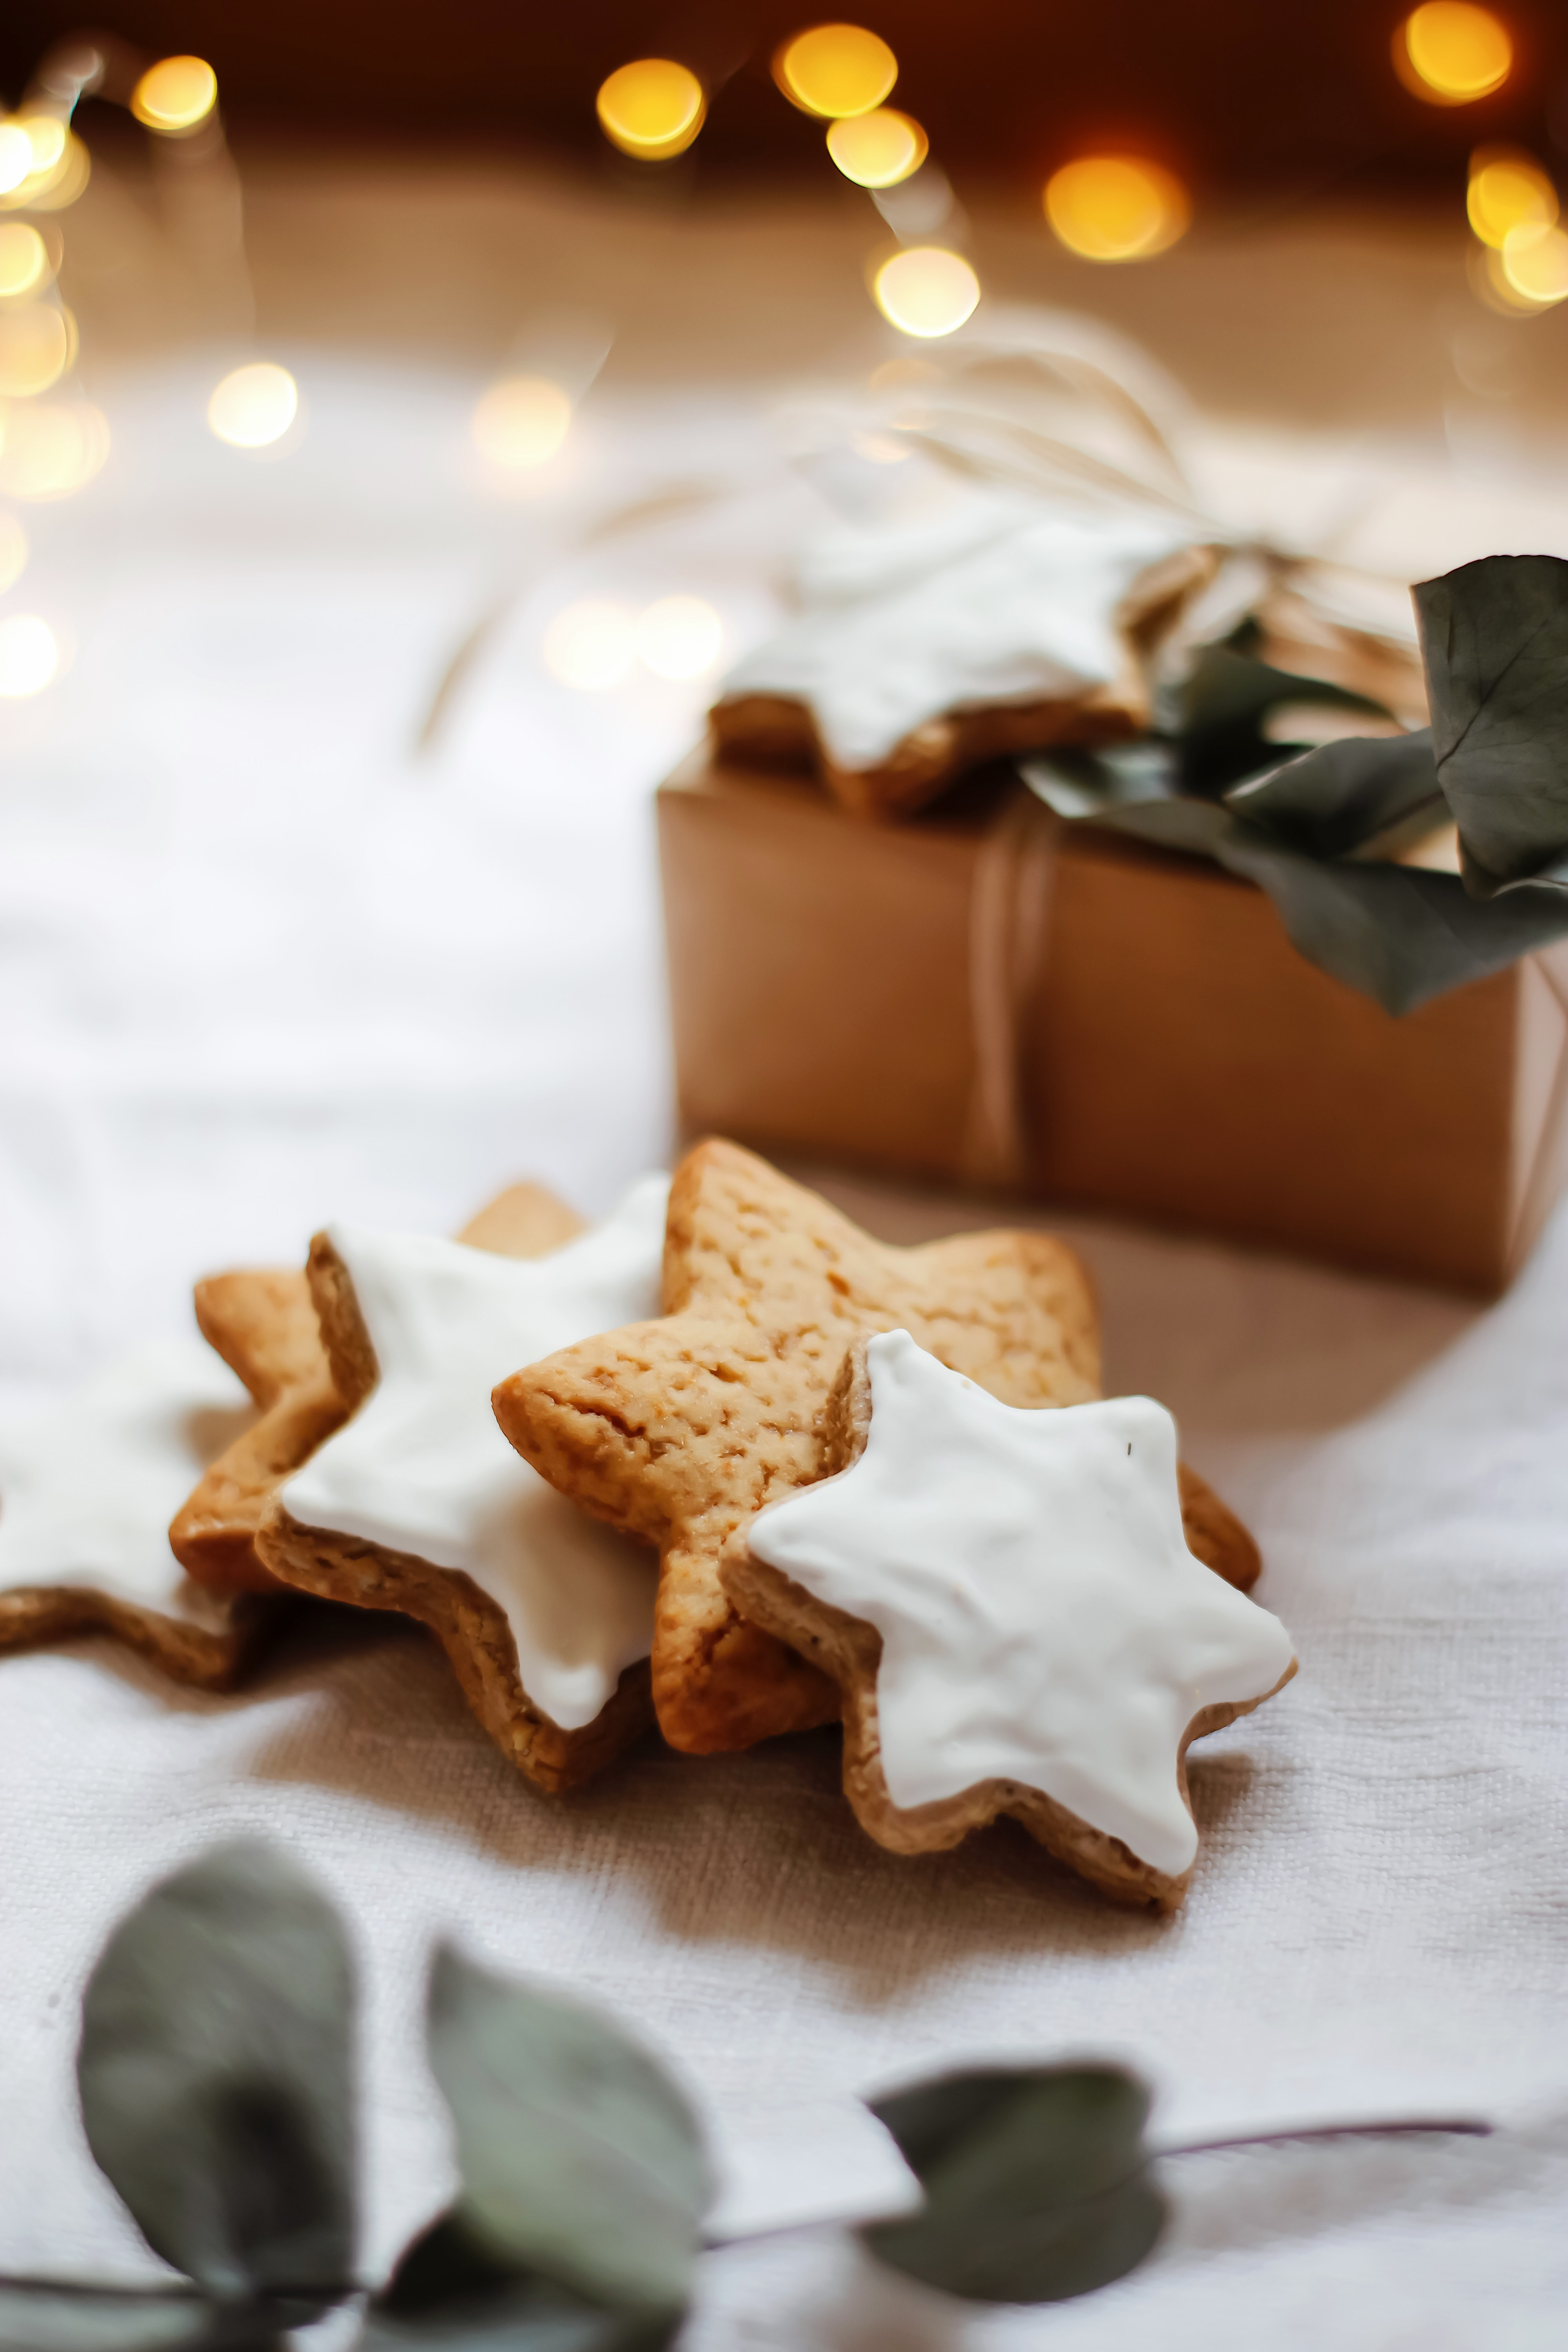 101712 download wallpaper Food, Cookies, Branch, Box, Glare, Stars screensavers and pictures for free